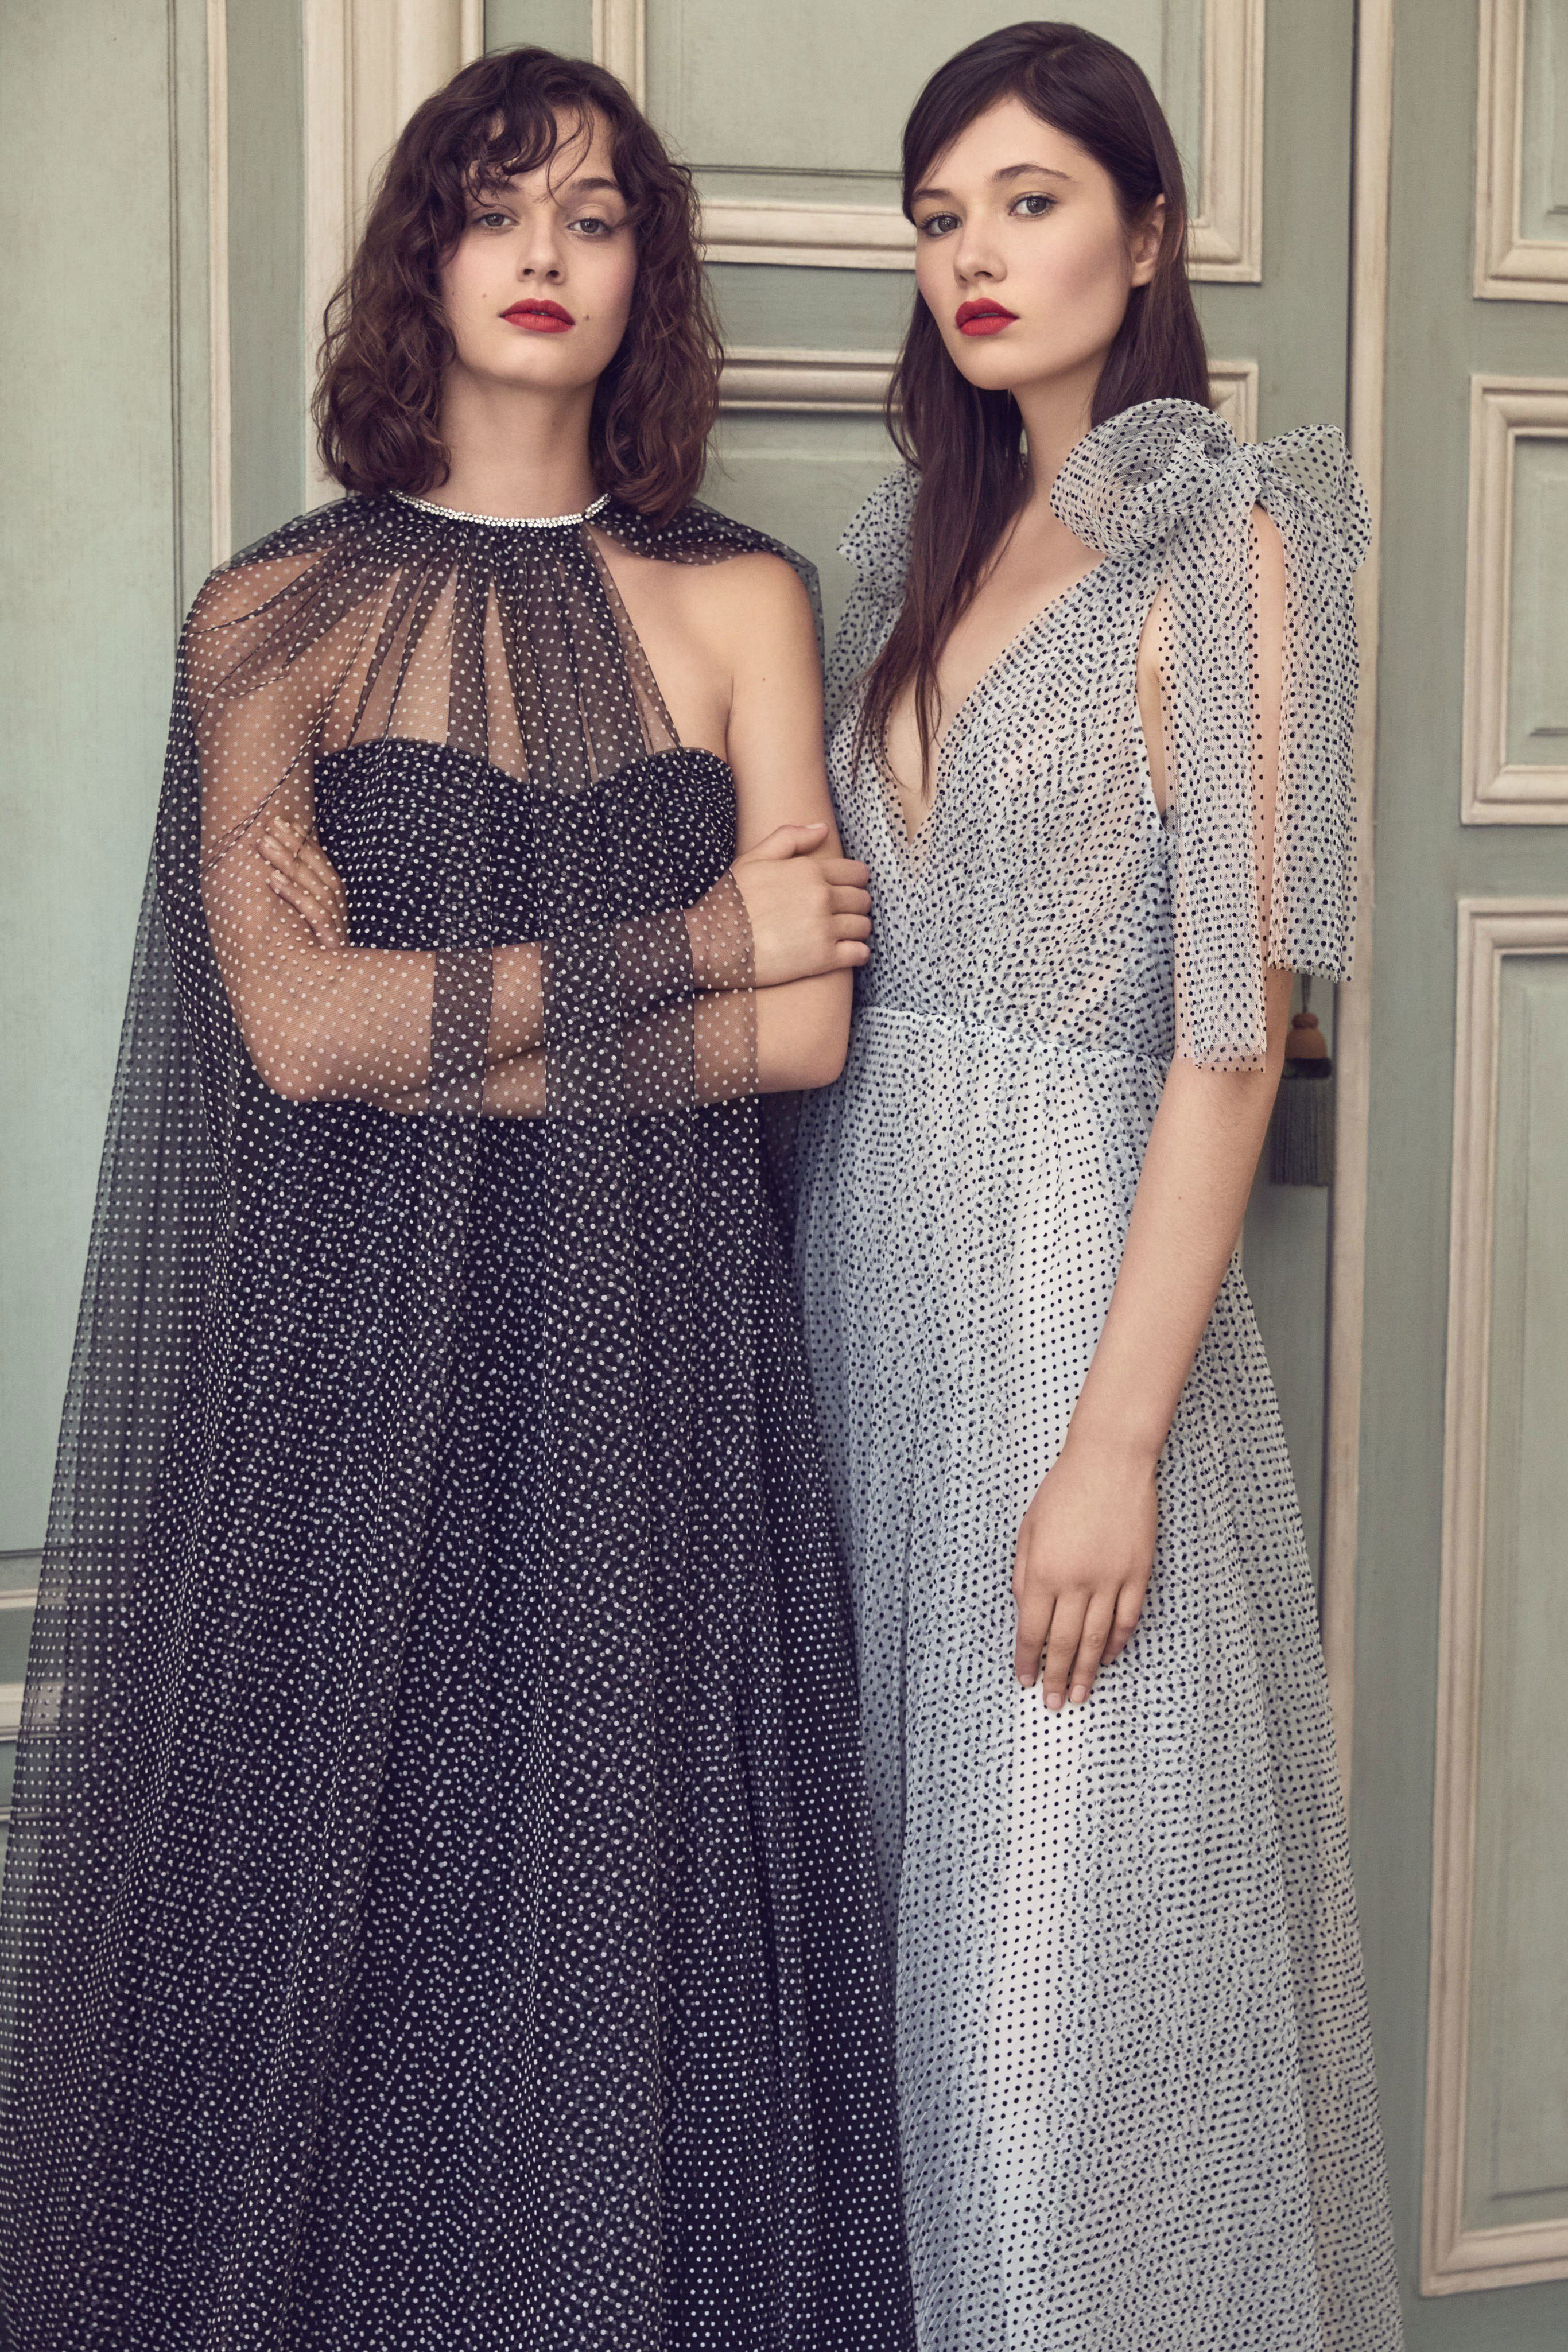 Monique Lhuillier Spring 2019 Ready-to-Wear Fashion Show Collection ...